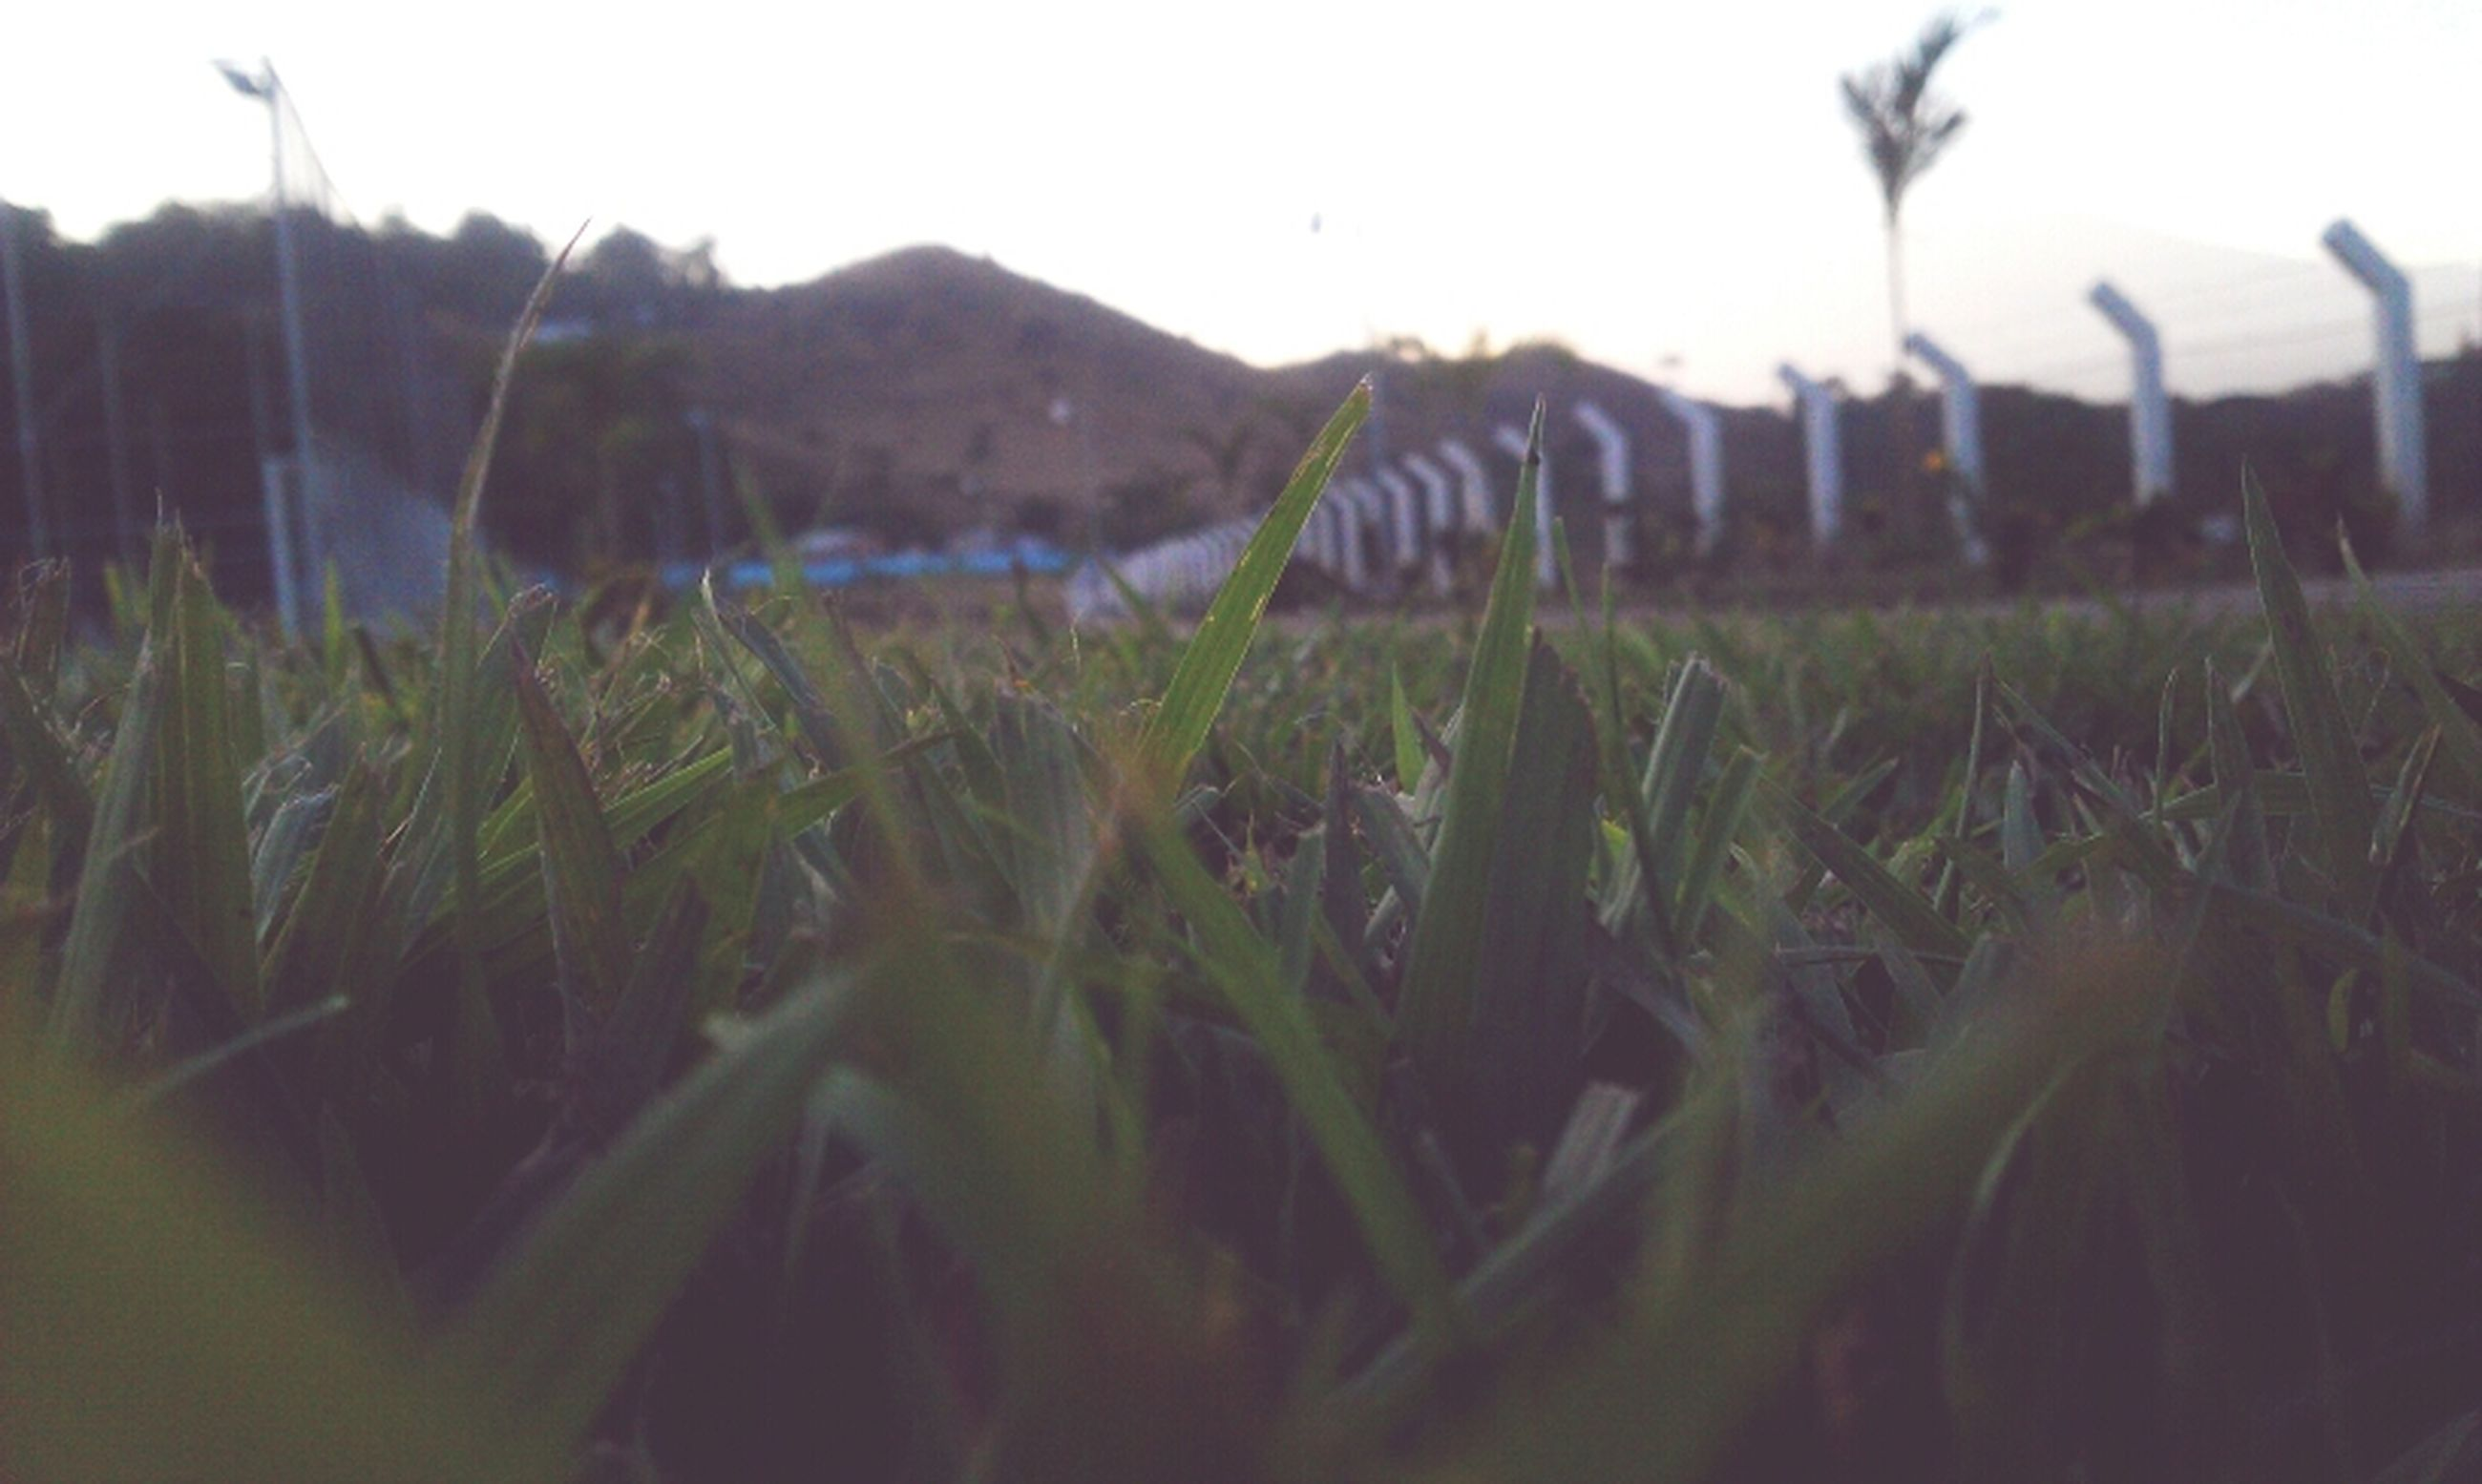 grass, plant, focus on foreground, field, growth, selective focus, nature, clear sky, tranquility, beauty in nature, green color, landscape, tranquil scene, close-up, grassy, growing, outdoors, mountain, day, sky